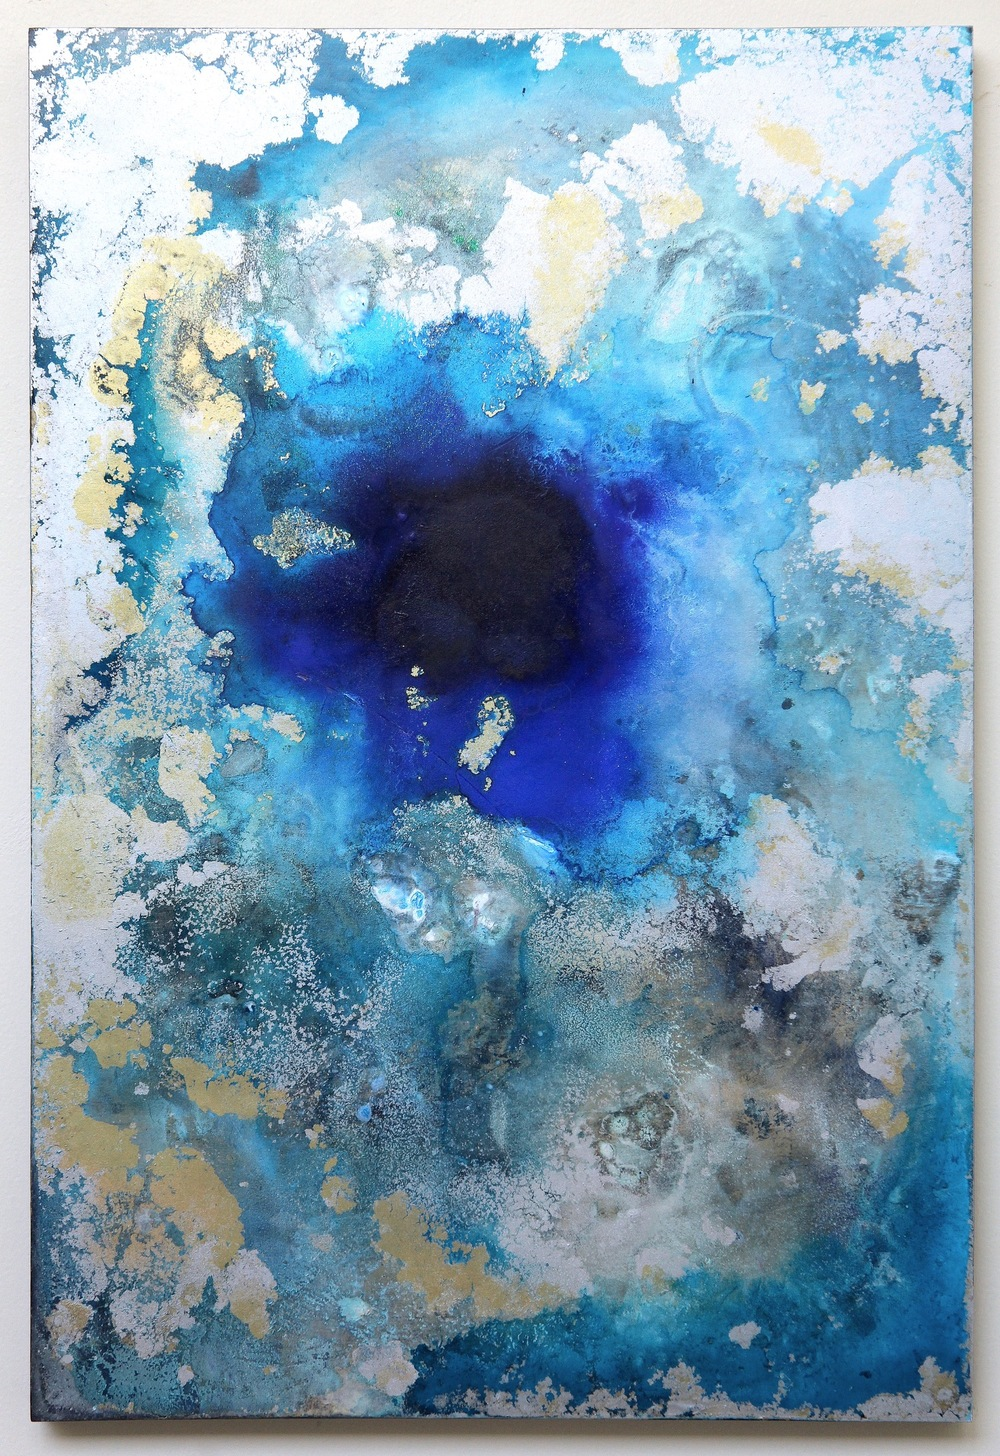 M18 ( Blue Whole)  2015  Acrylic and metal powder on board  H60.6cm x W41cm